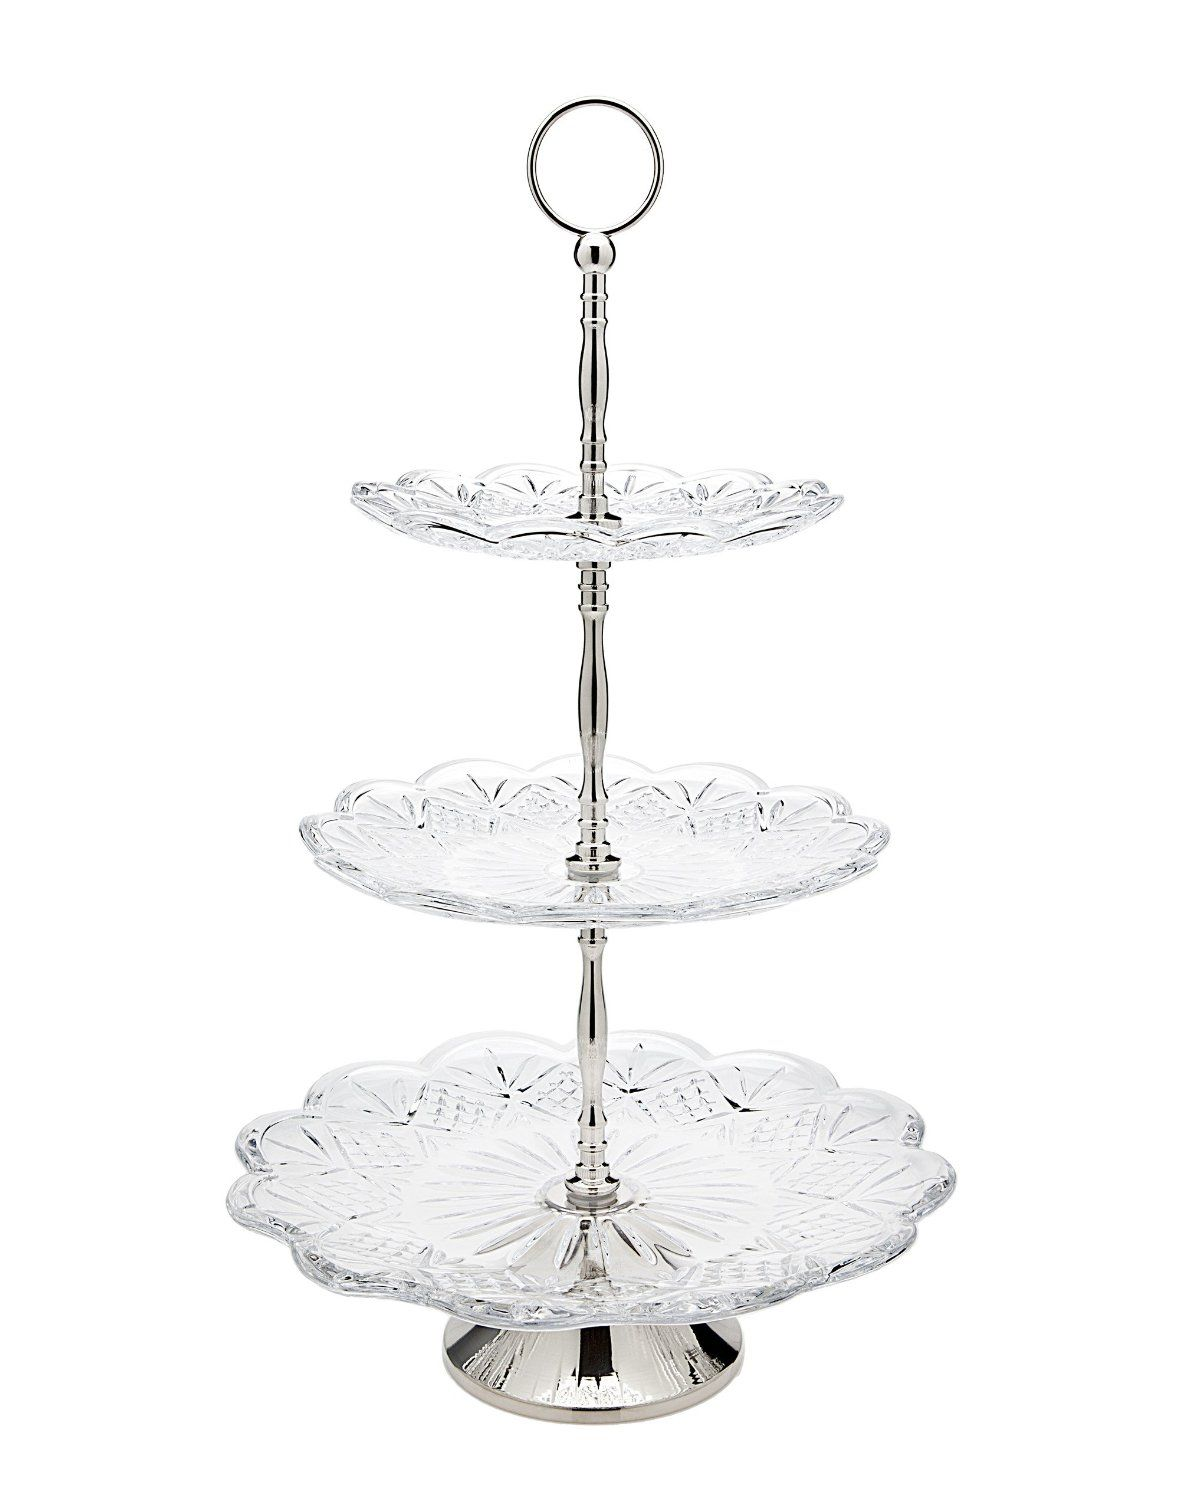 Amazon Com Godinger 25506 Dublin Dinnerware Dublin 3 Tier High Server Trays Serving Trays Dublin Crystal Tiered Server Crystal Cake Stand